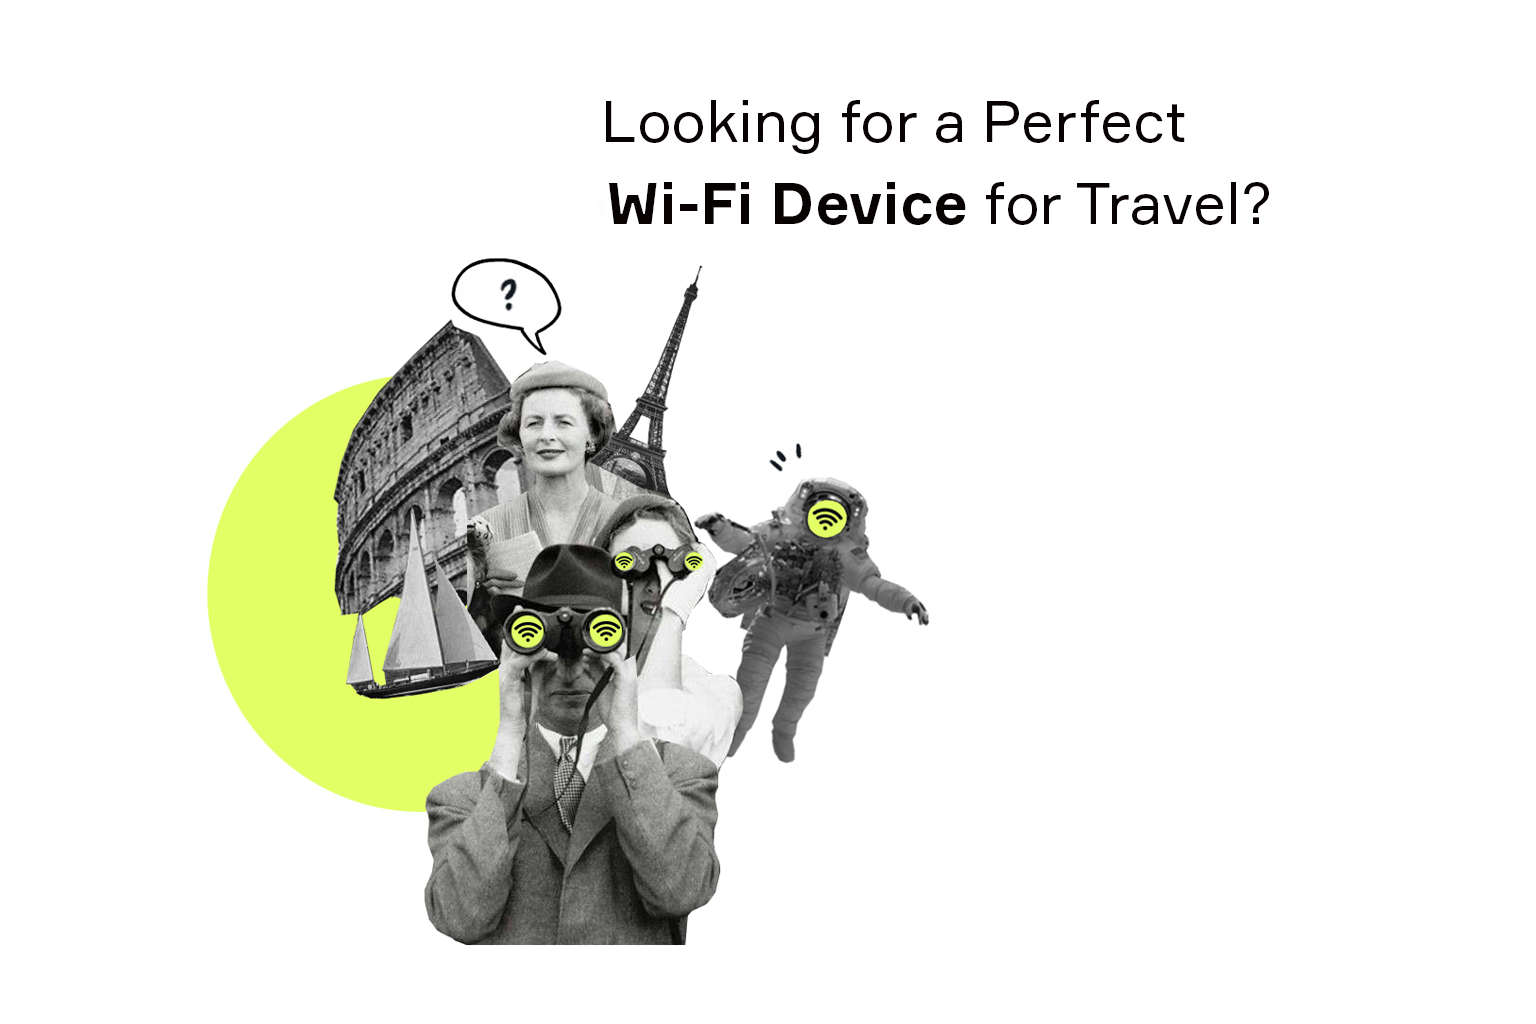 wifi device for travel